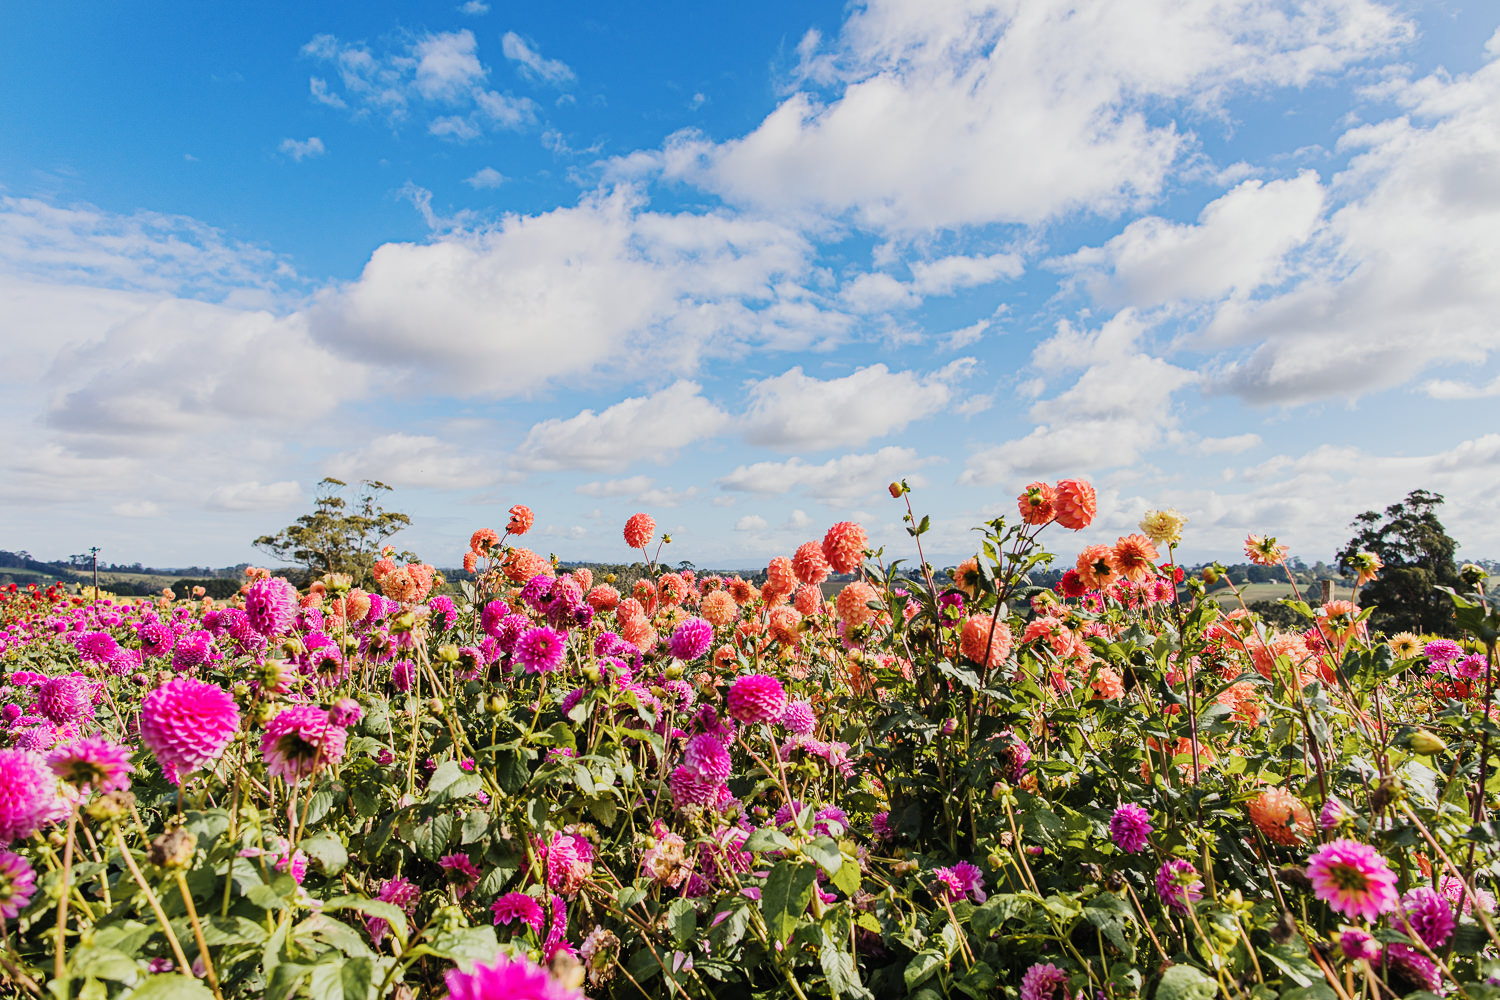 blue sky and clouds over flower field